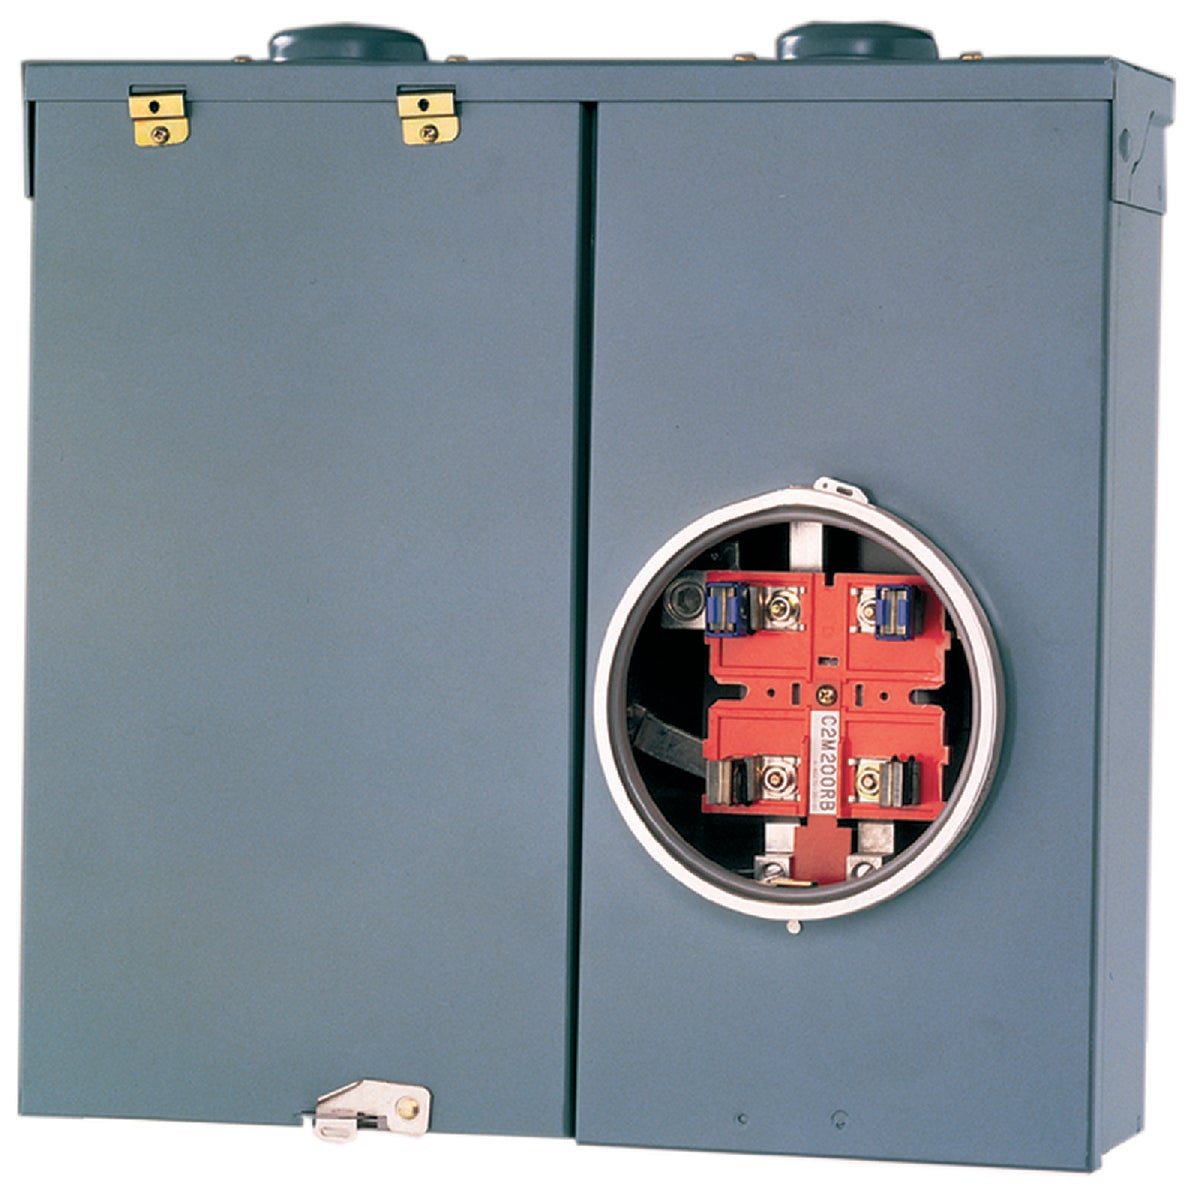 200A METER BREAKER PANEL - CQRA200 by Square D Co